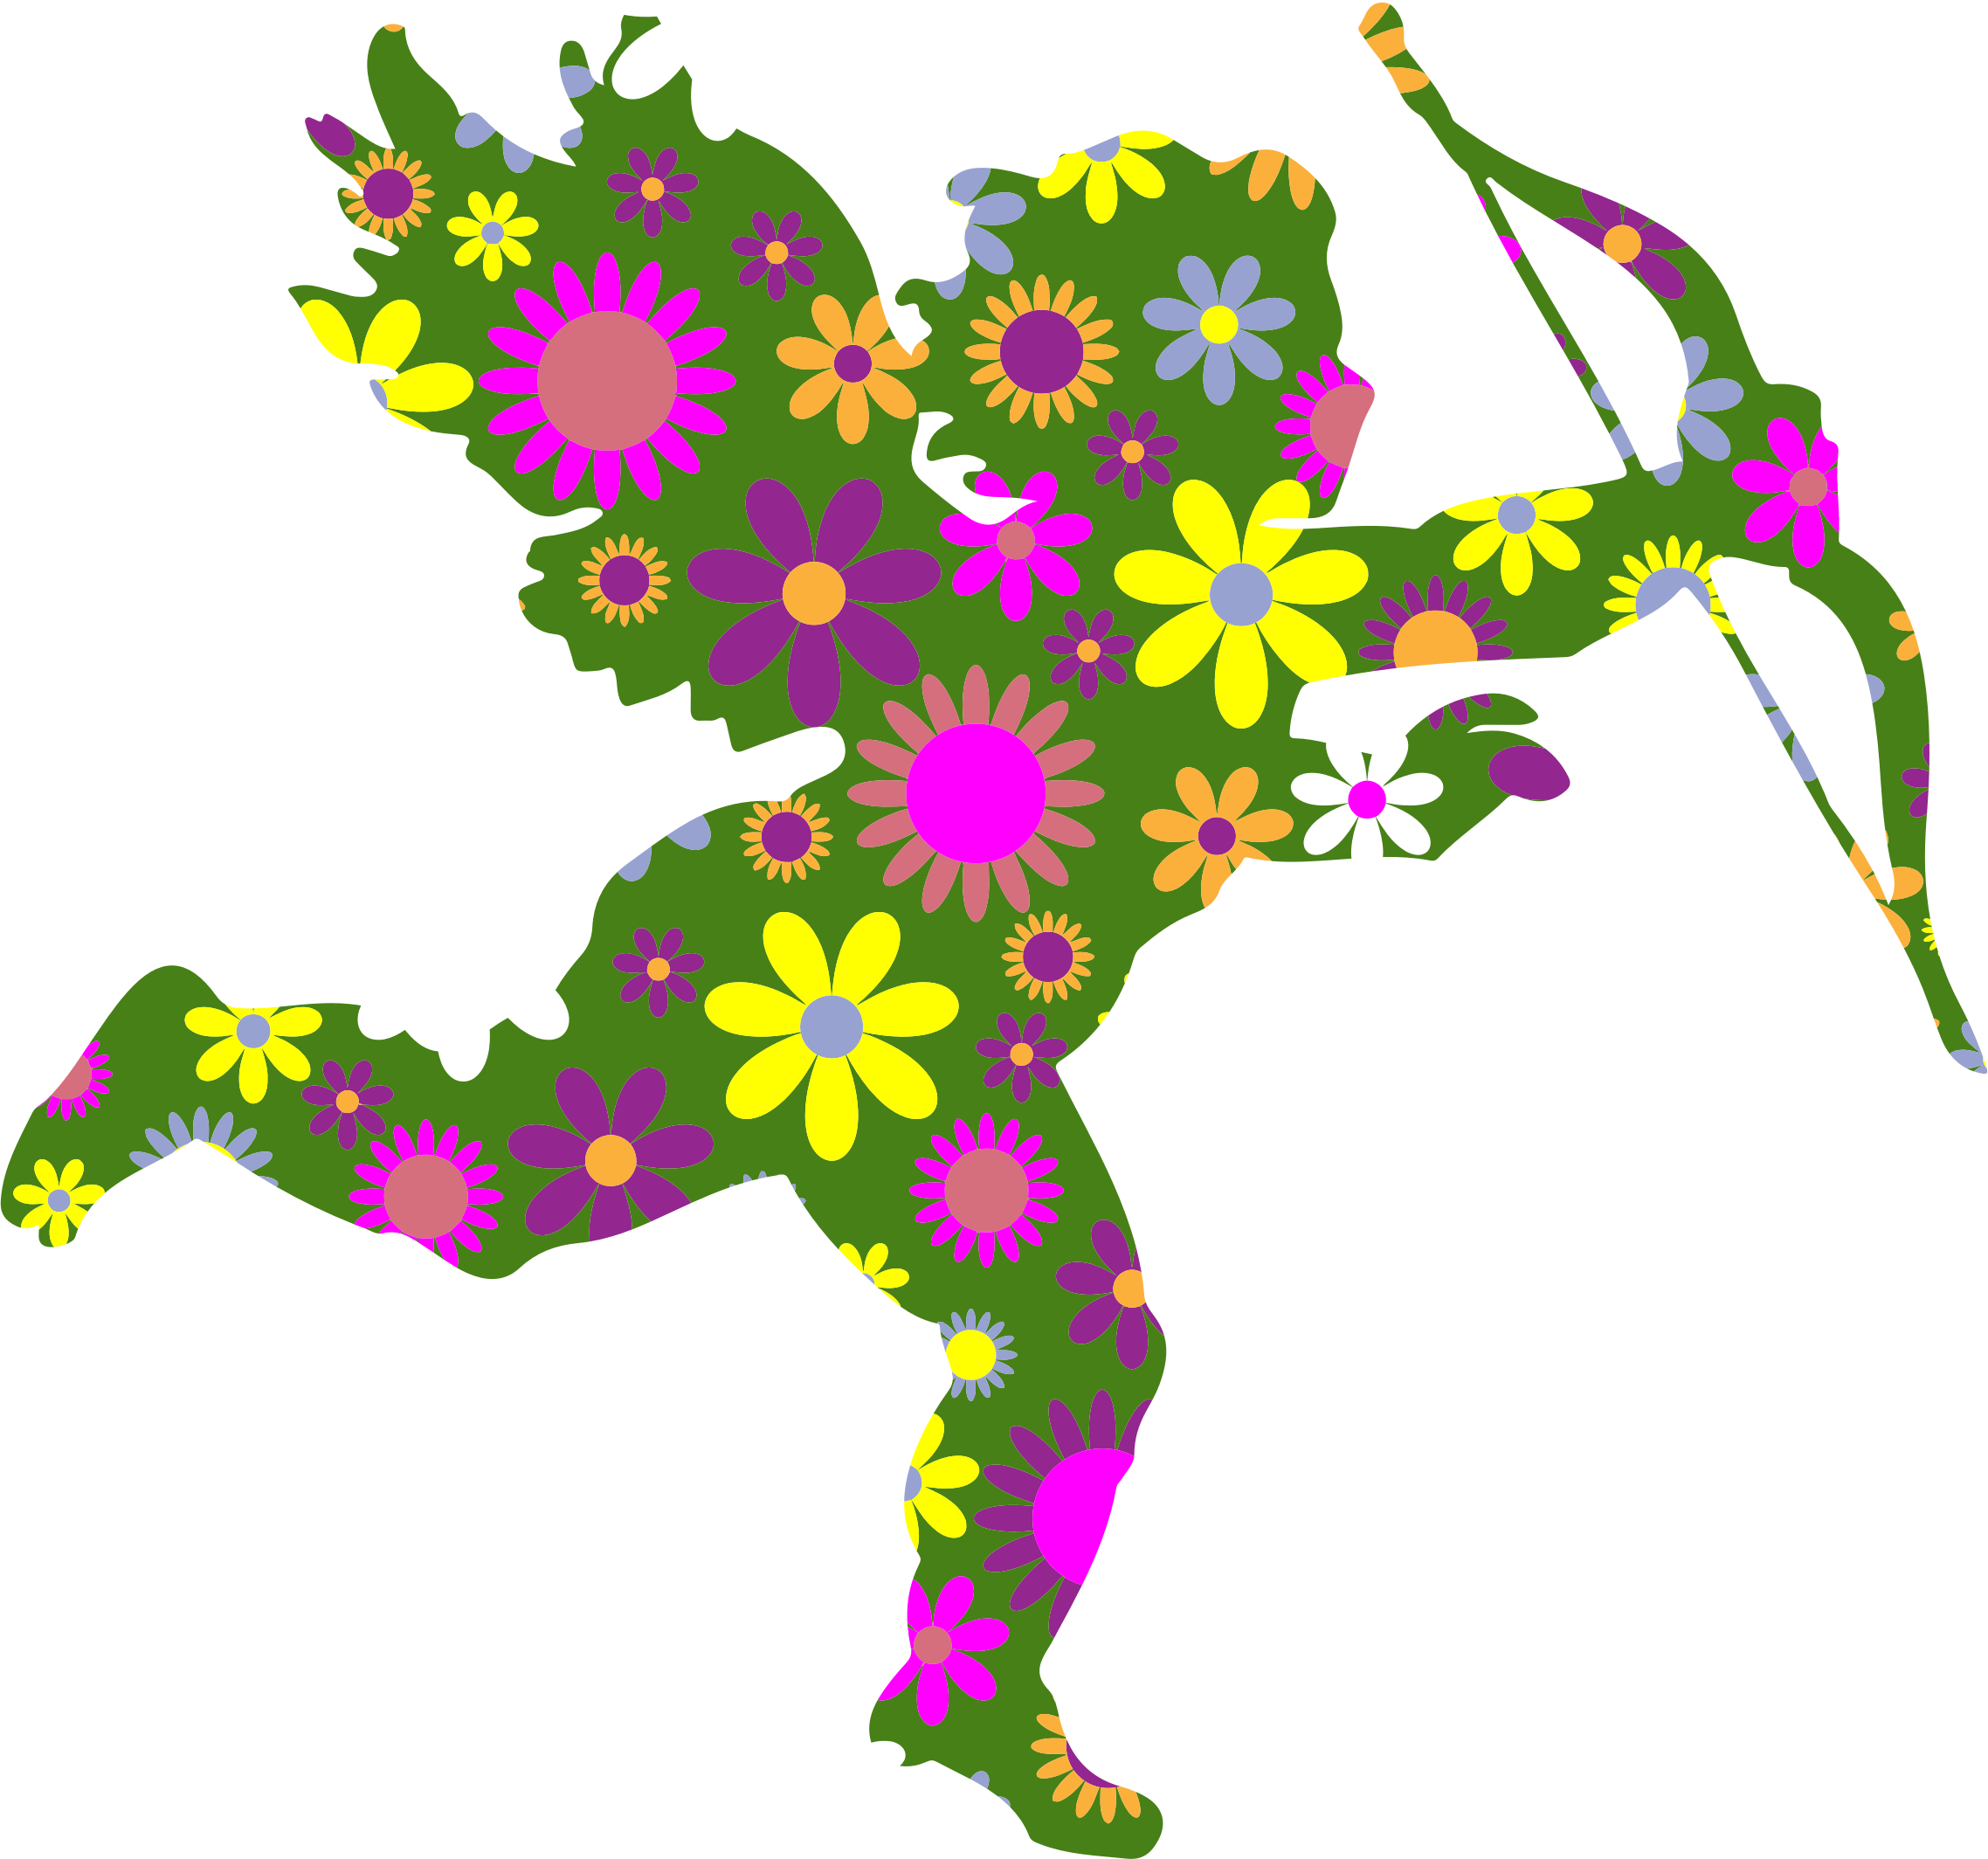 Retro Floral Cupid by GDJ